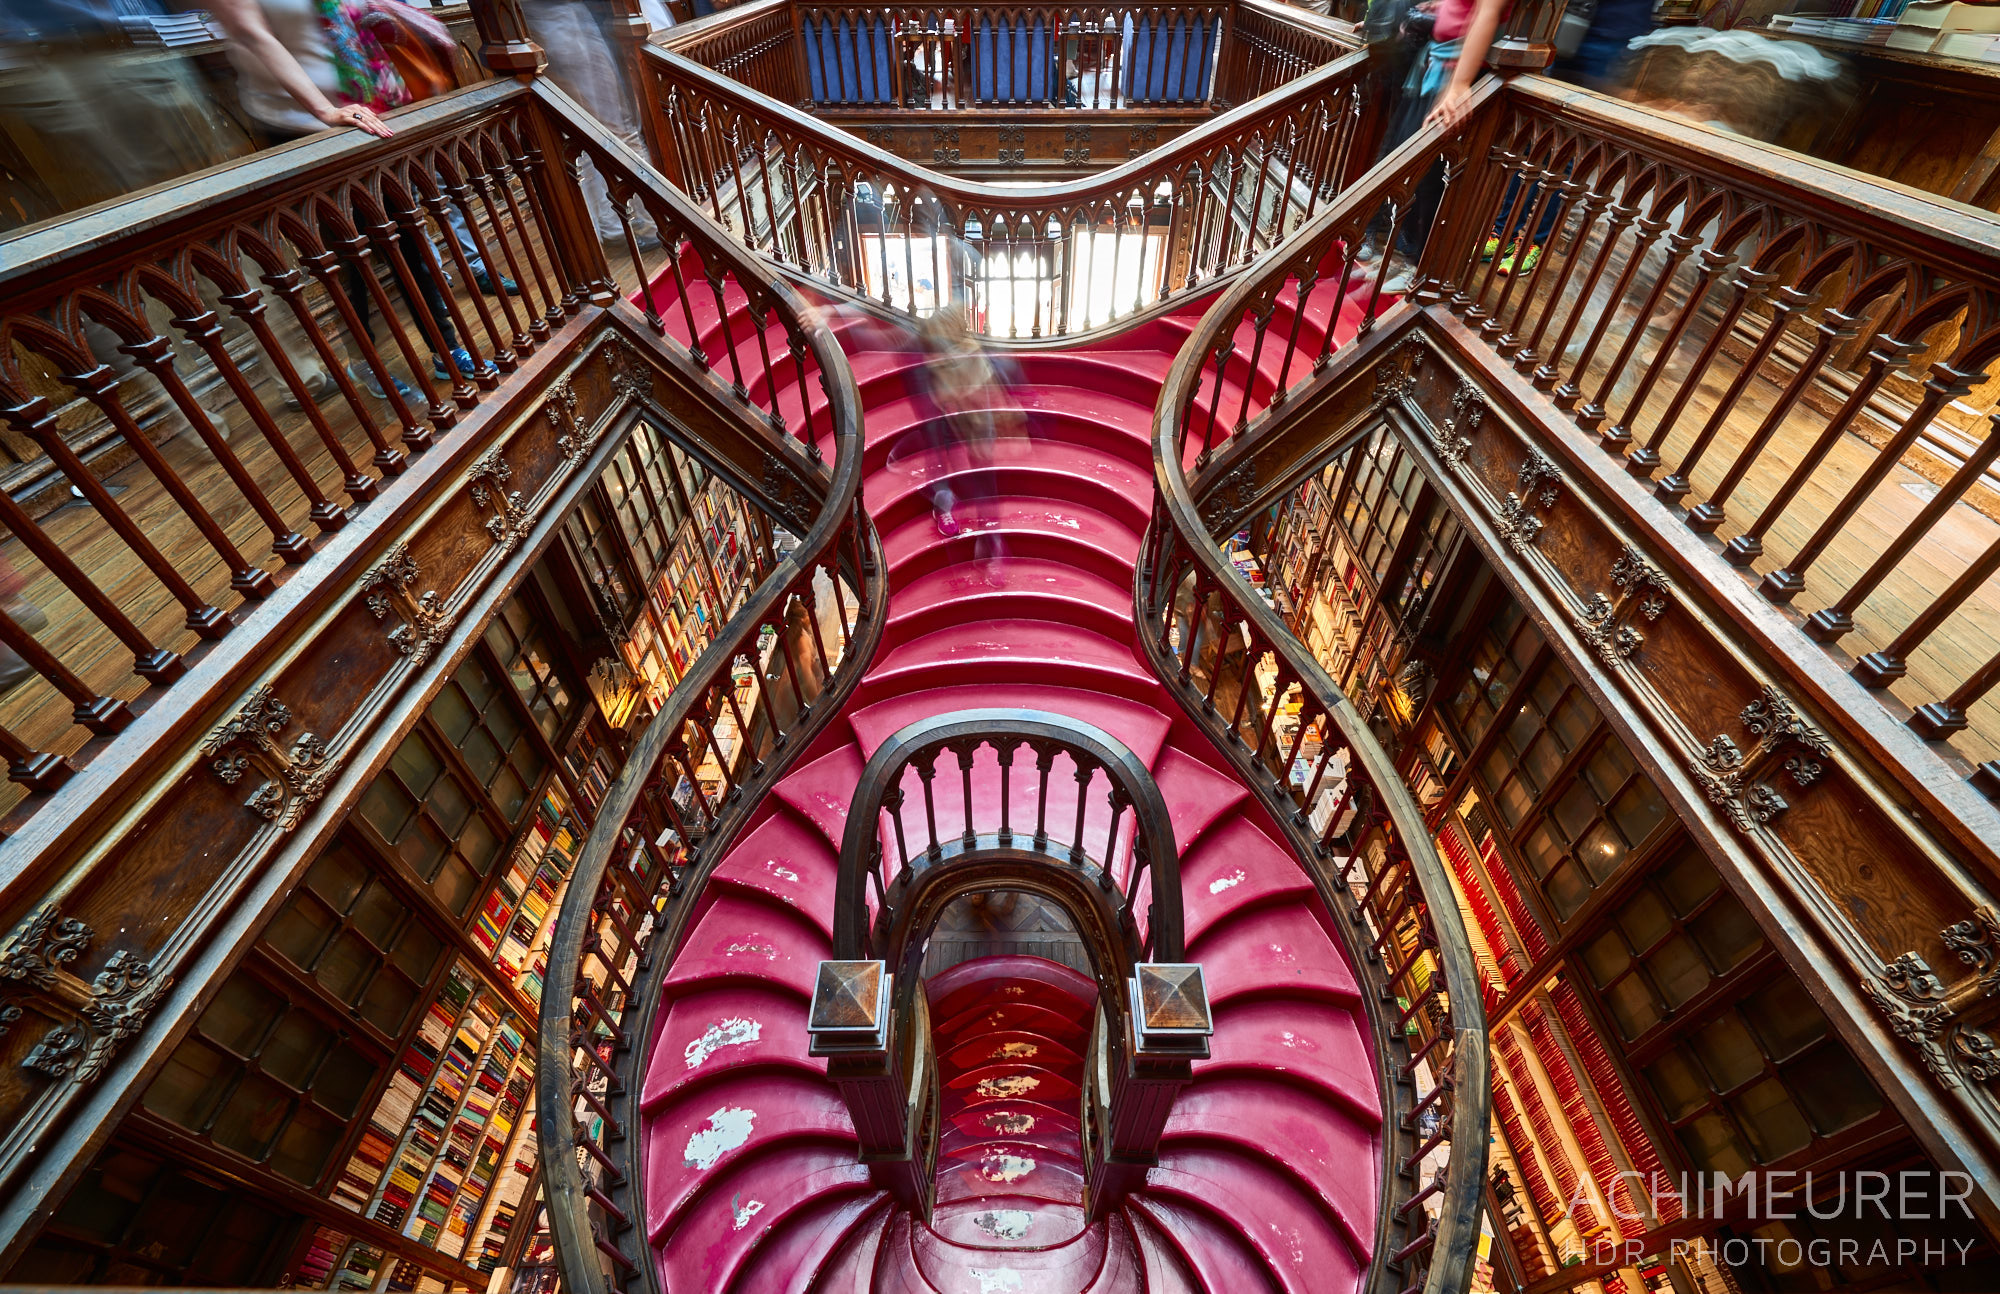 Die Buchhandlung Lello in Porto in Portugal, Inspiration für J.K. Rowling für Harry Potter by Array.